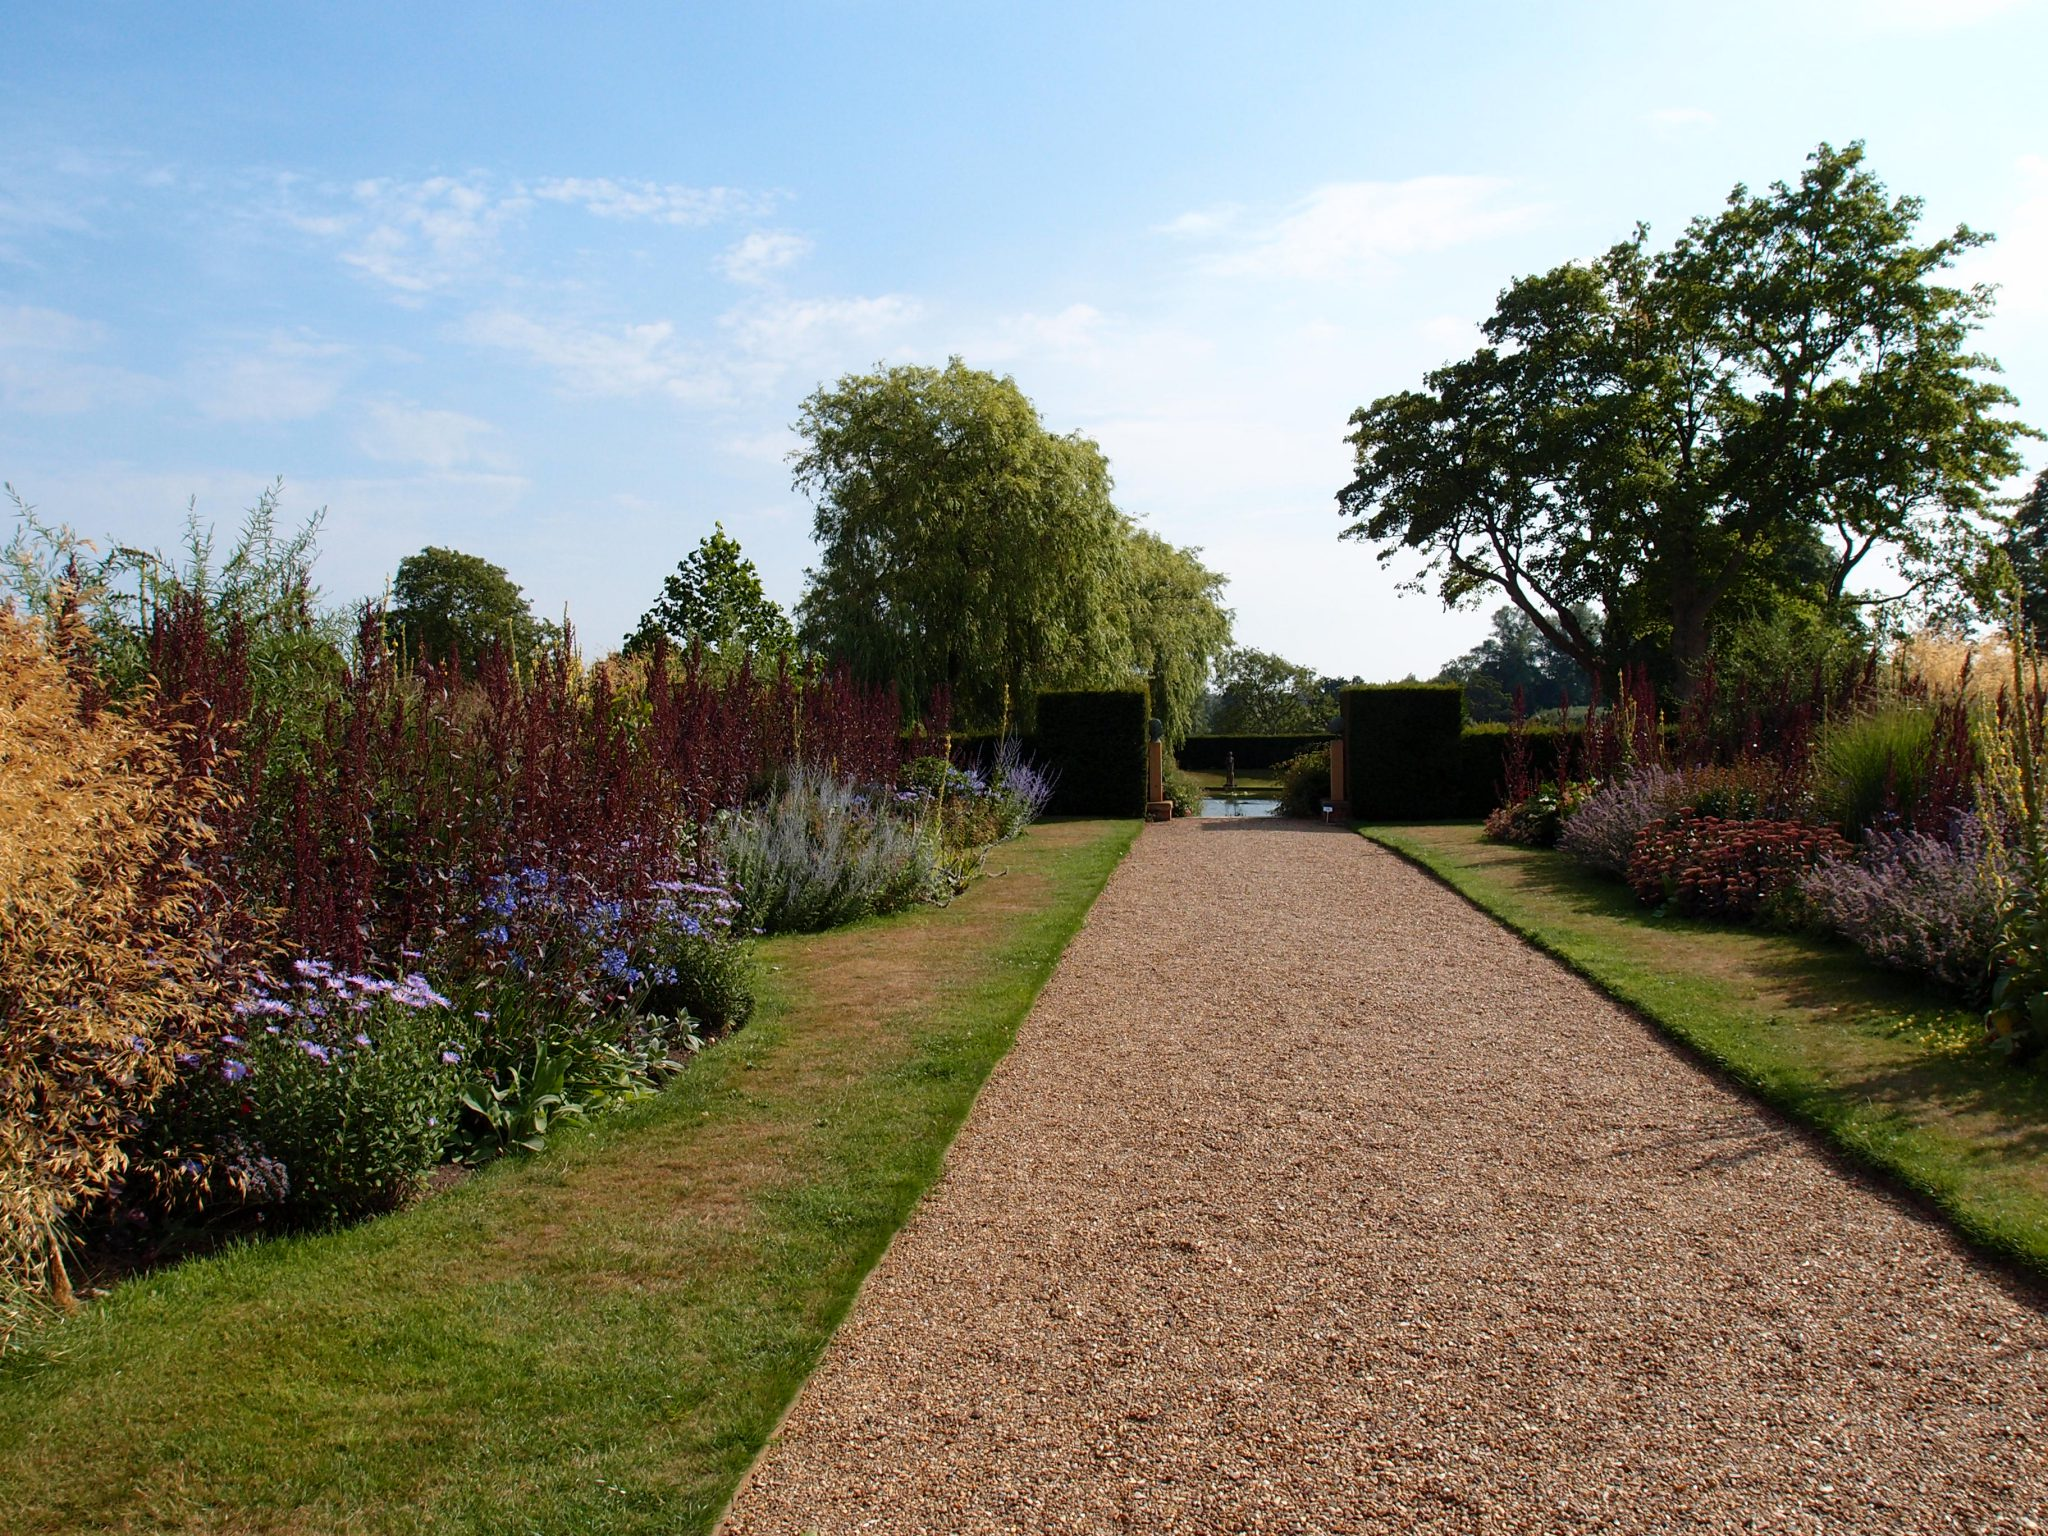 From the Croquet Lawn, we proceeded south, on the Herbaceous Border path. The Lily Pond shimmers, in the distance.